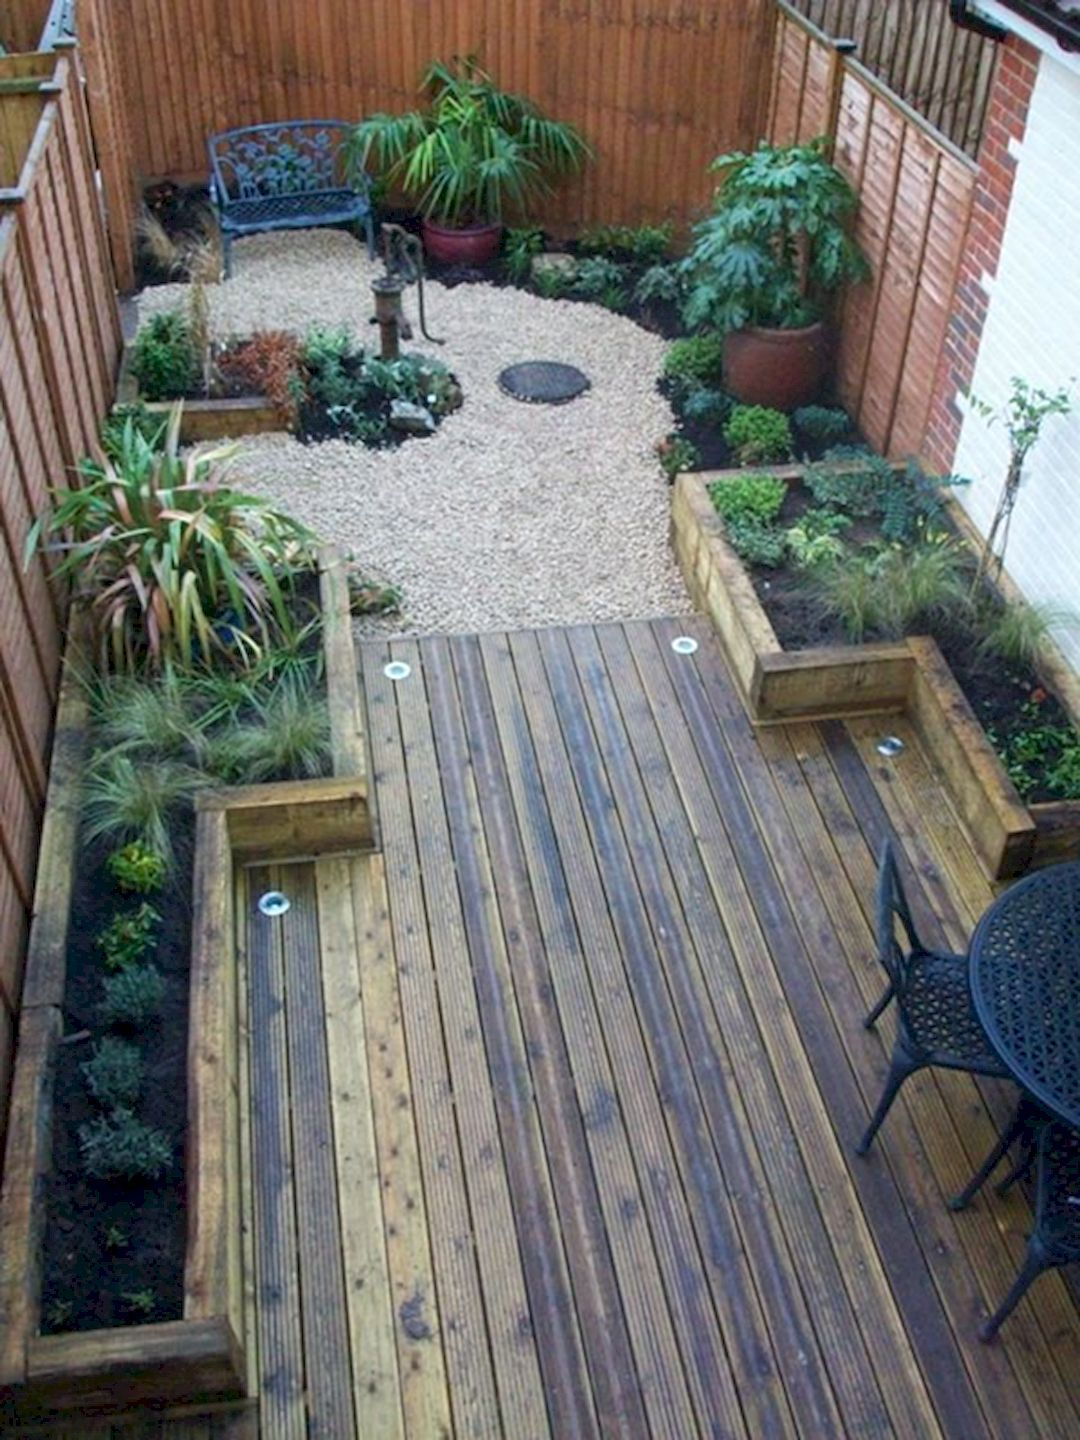 5 Exceptional Backyard With Pool Designs Small Backyard Landscaping Backyard Landscaping Designs Backyard Patio